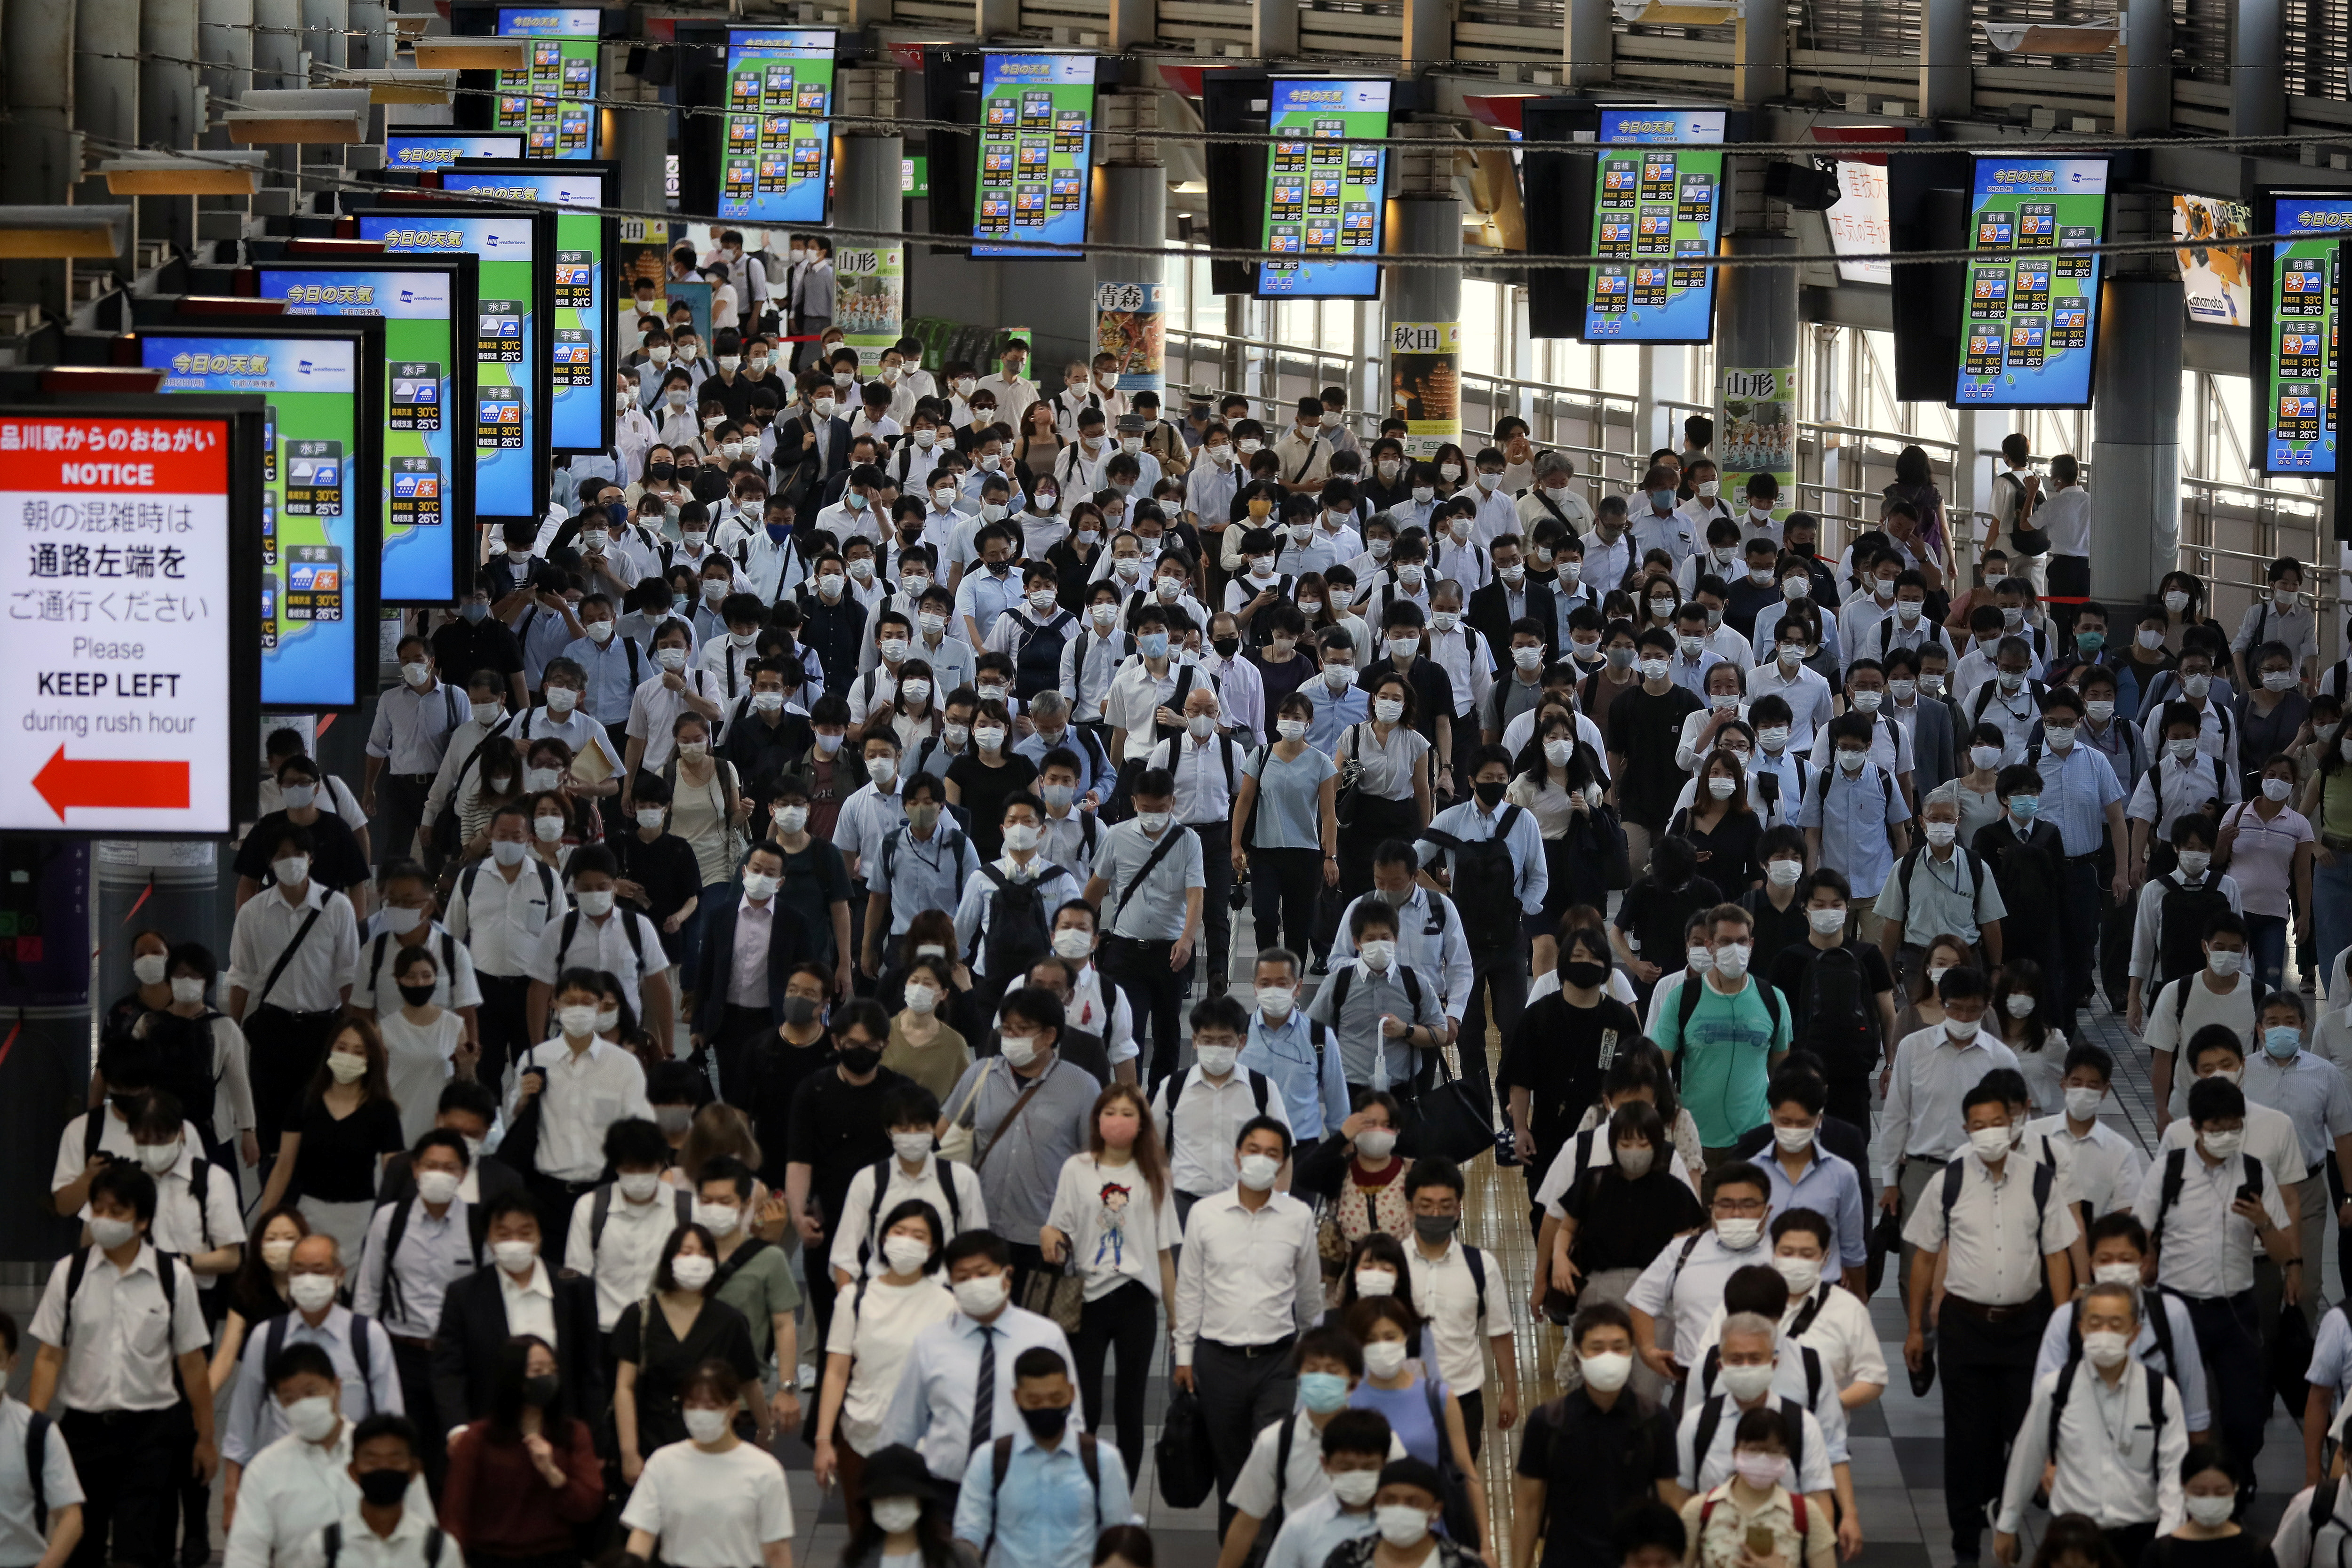 Commuters wearing face masks arrive at Shinagawa Station at the start of the working day amid the coronavirus disease (COVID-19) outbreak, in Tokyo, Japan, August 2, 2021.REUTERS/Kevin Coombs